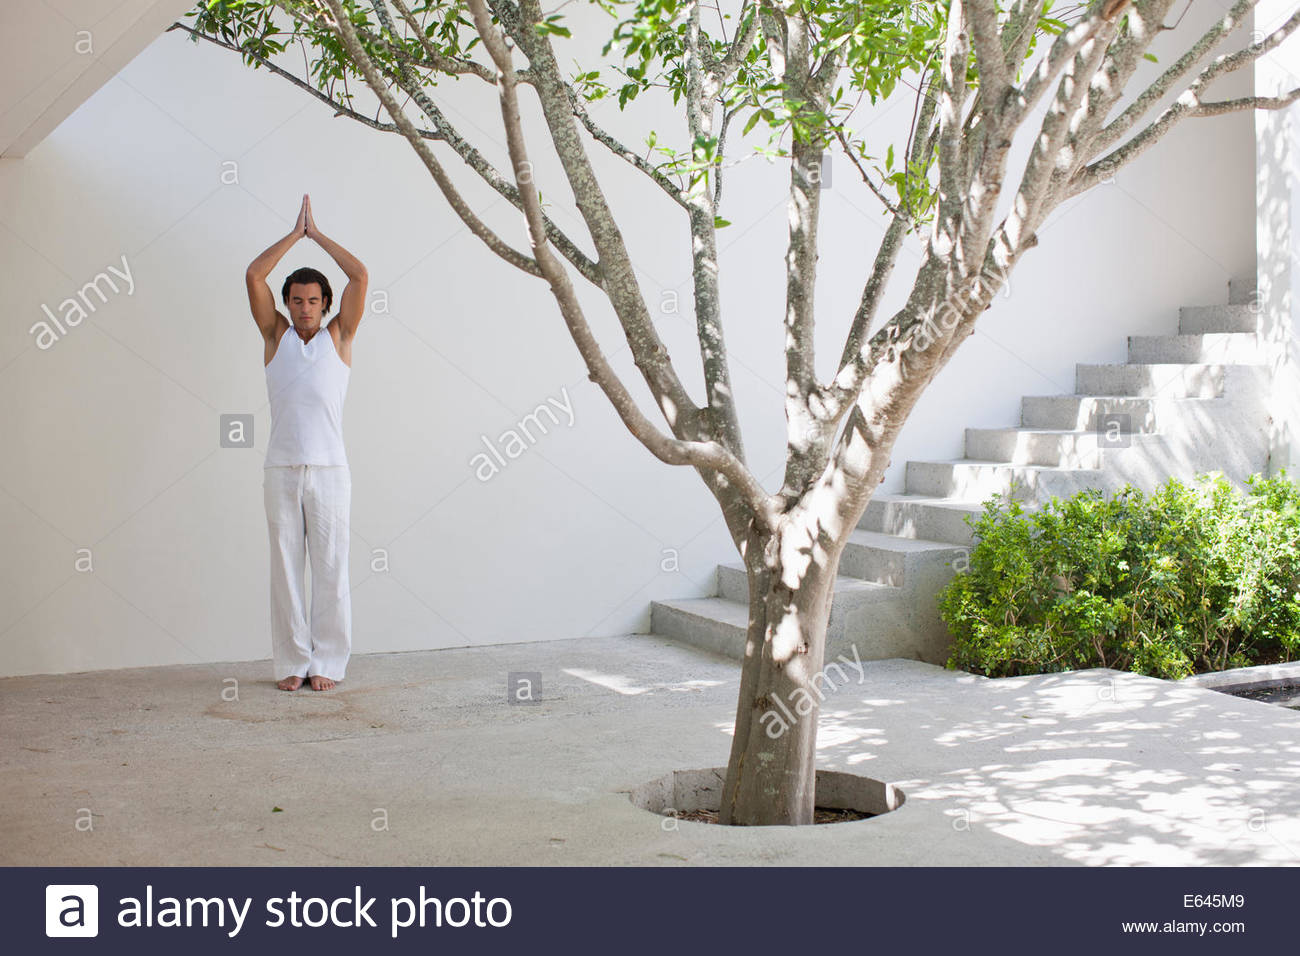 Man standing with arms outstretched in courtyard Photo Stock